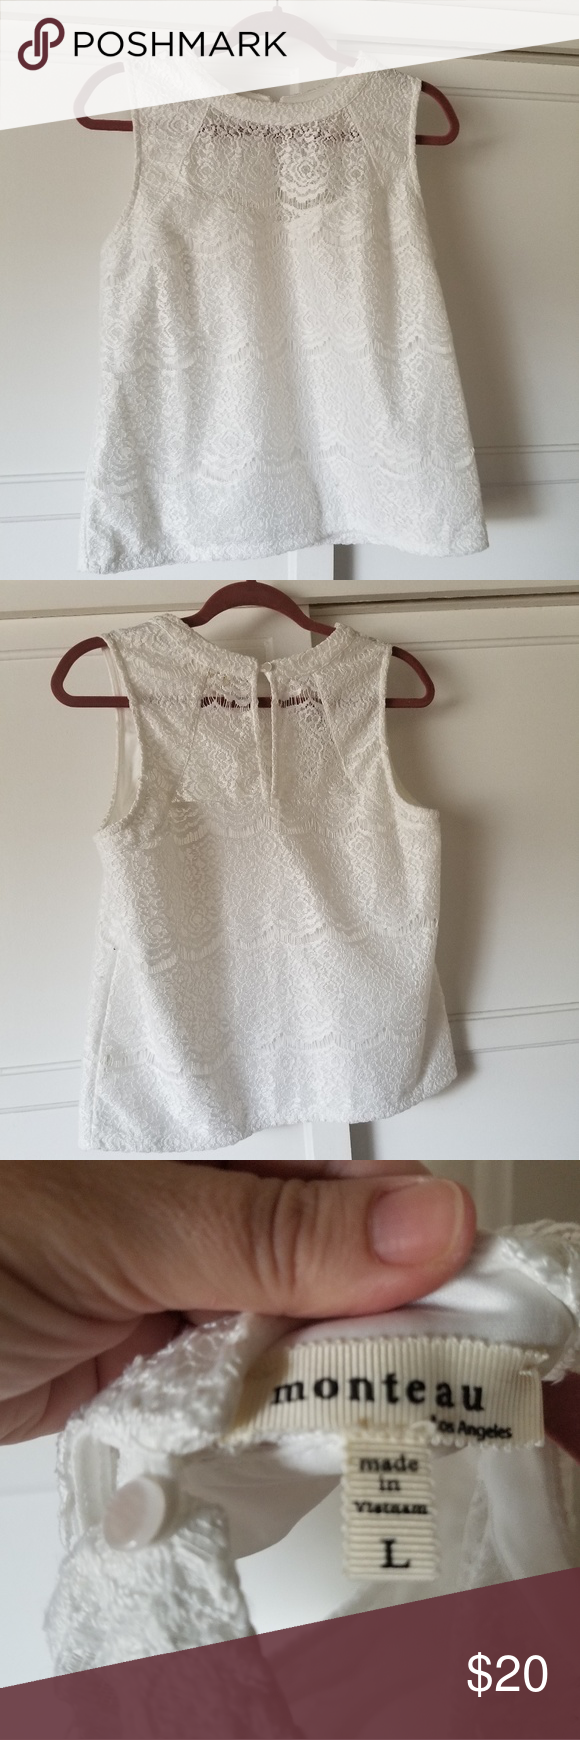 c603ba3e142c7b Monteau White Lace High Neck Tank Perfect condition. Beautiful bright white.  Lined lace tank